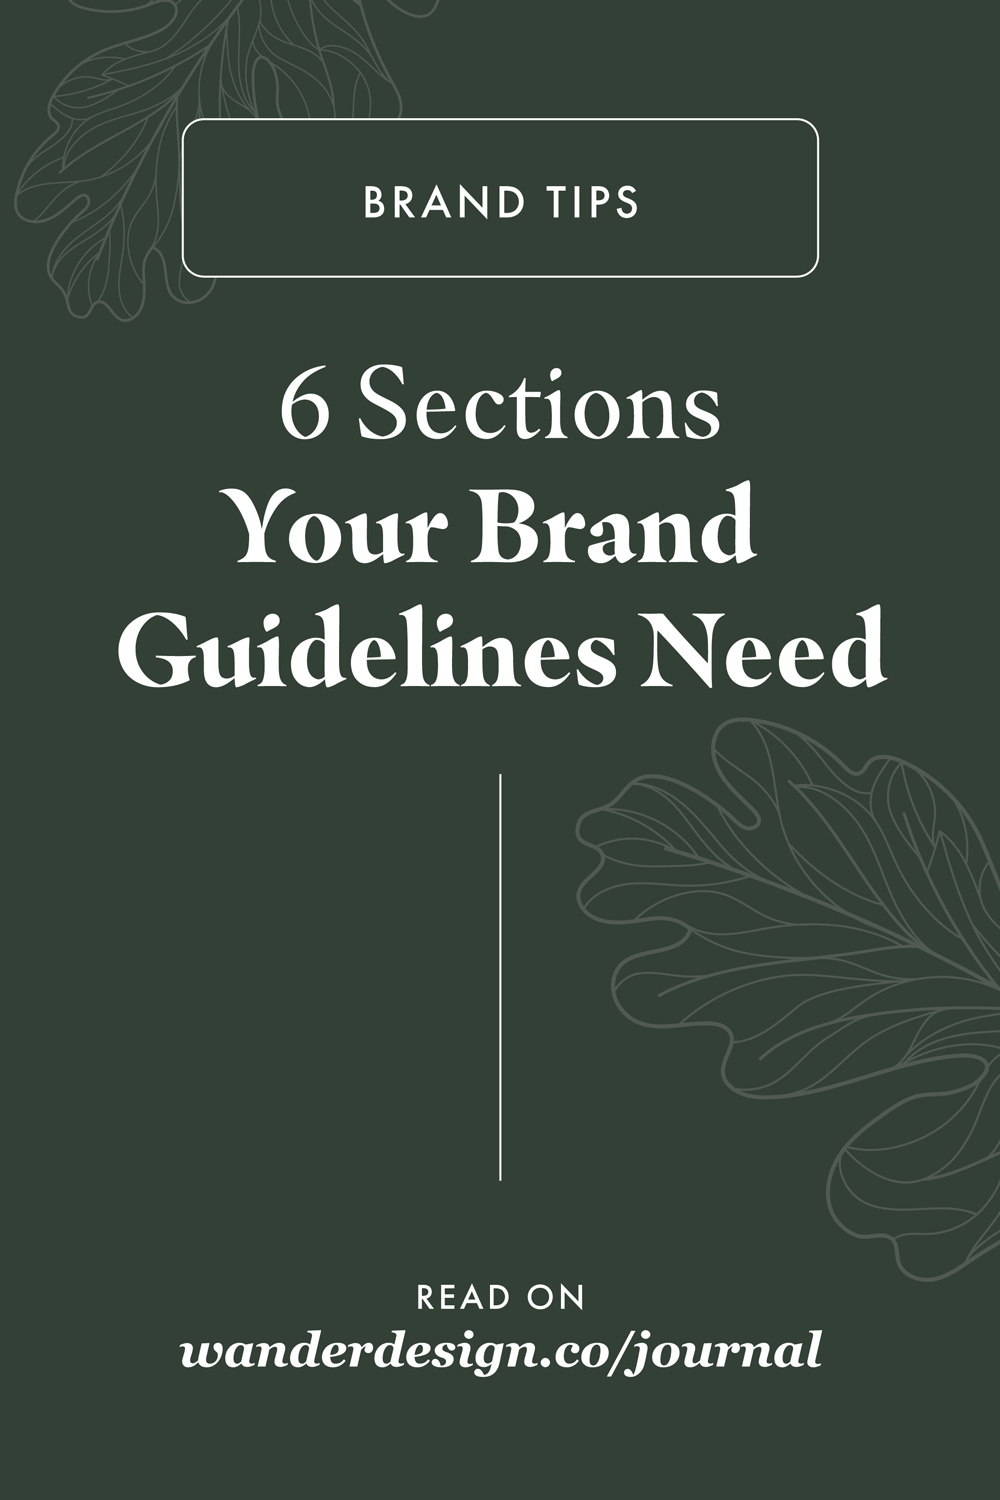 6 Sections Your Brand Guidelines Need